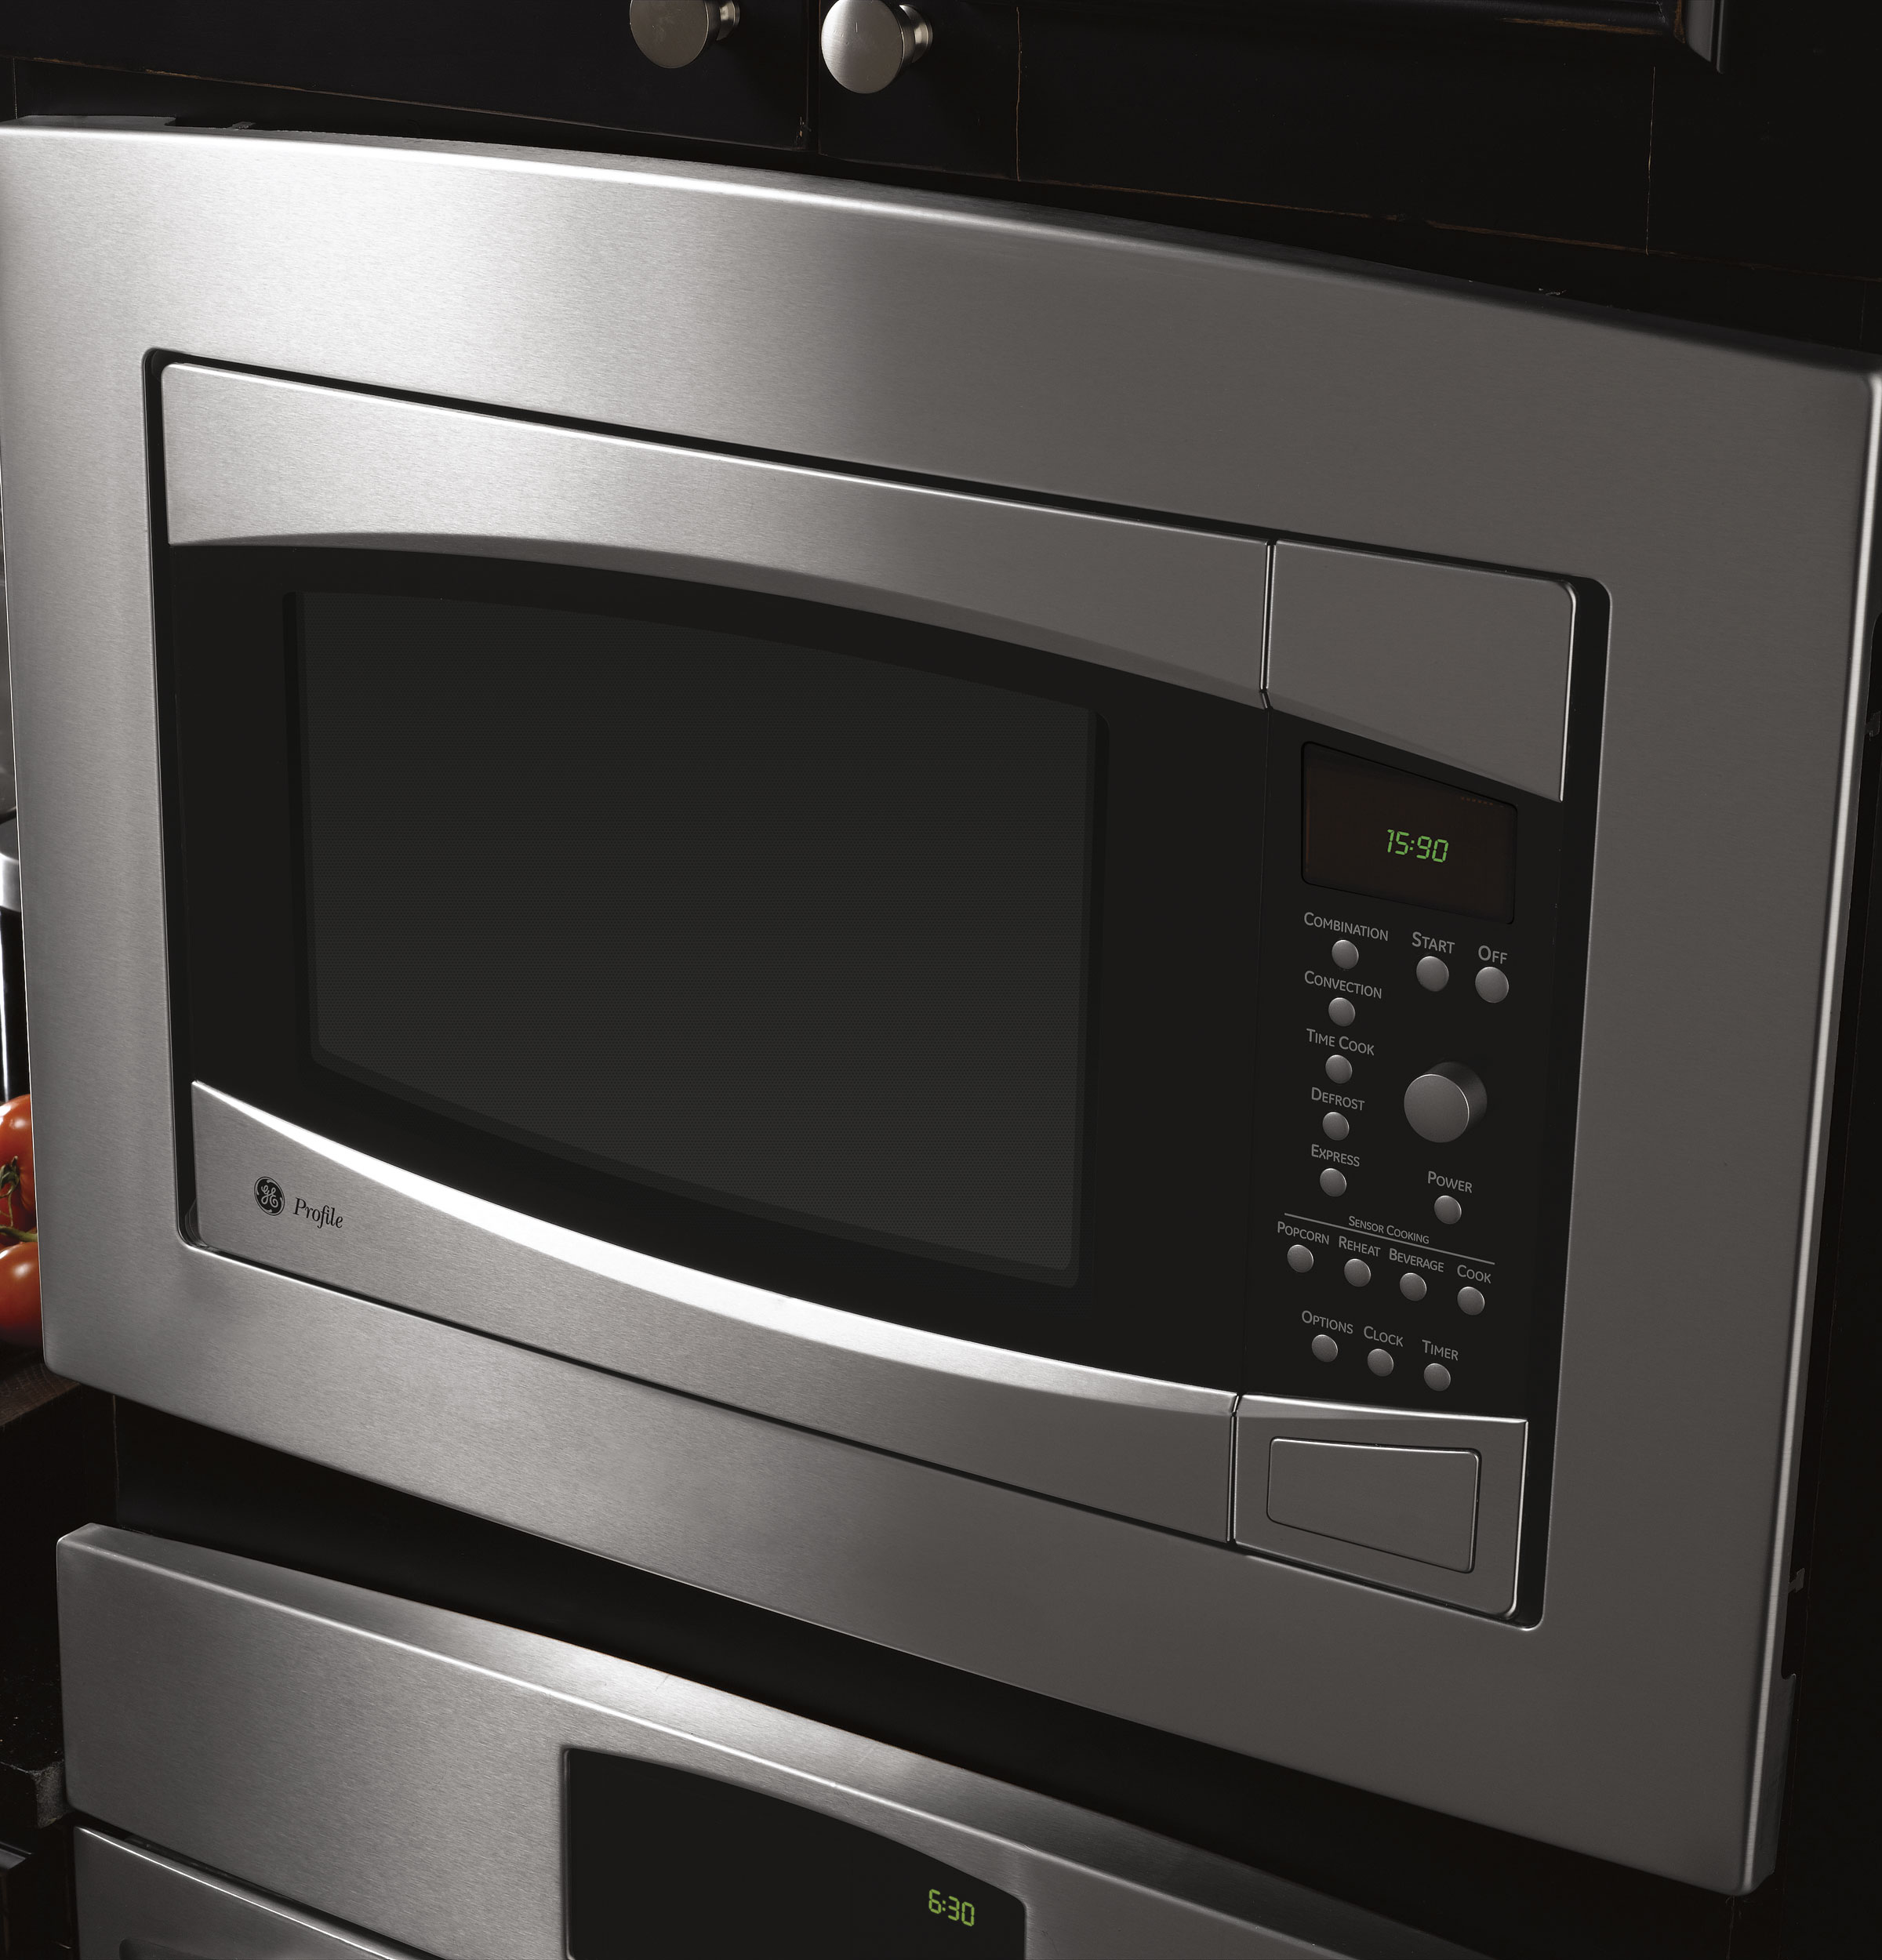 Countertop Convection Oven With Microwave : ... Cu. Ft. Countertop Convection/Microwave Oven - The Monogram Collection